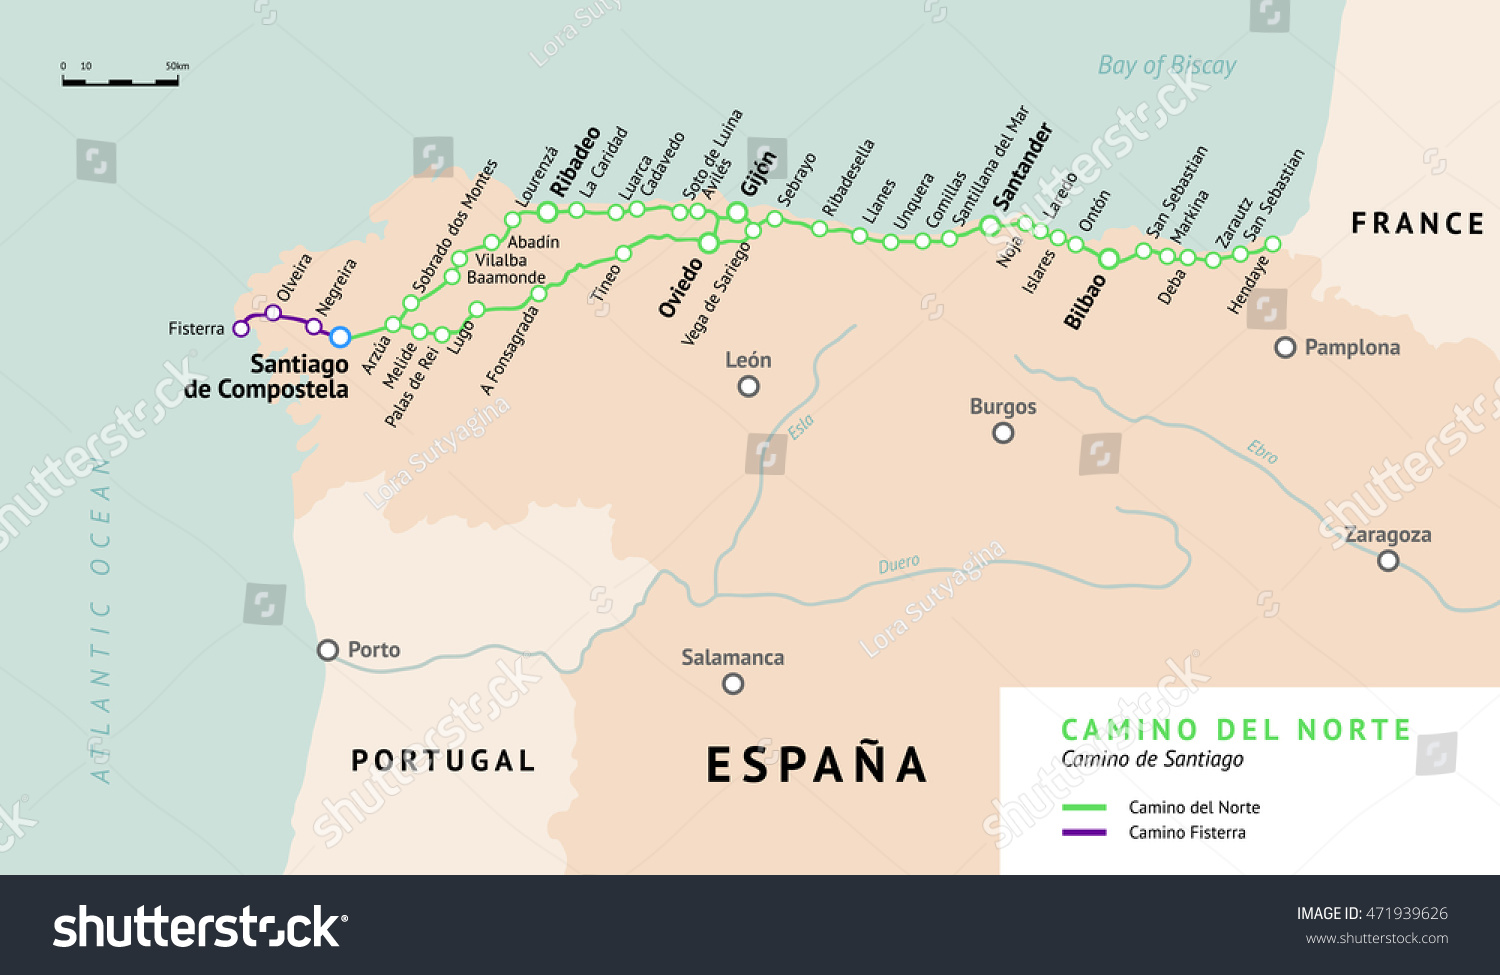 santiago trail spain map with Camino Del Norte Map De Santiago 471939626 on Nadezhda Tolokonnikova furthermore Lisa Kolumna blogspot as well Rutas Camino Santiago also The Meseta To Hontanas moreover Karte.